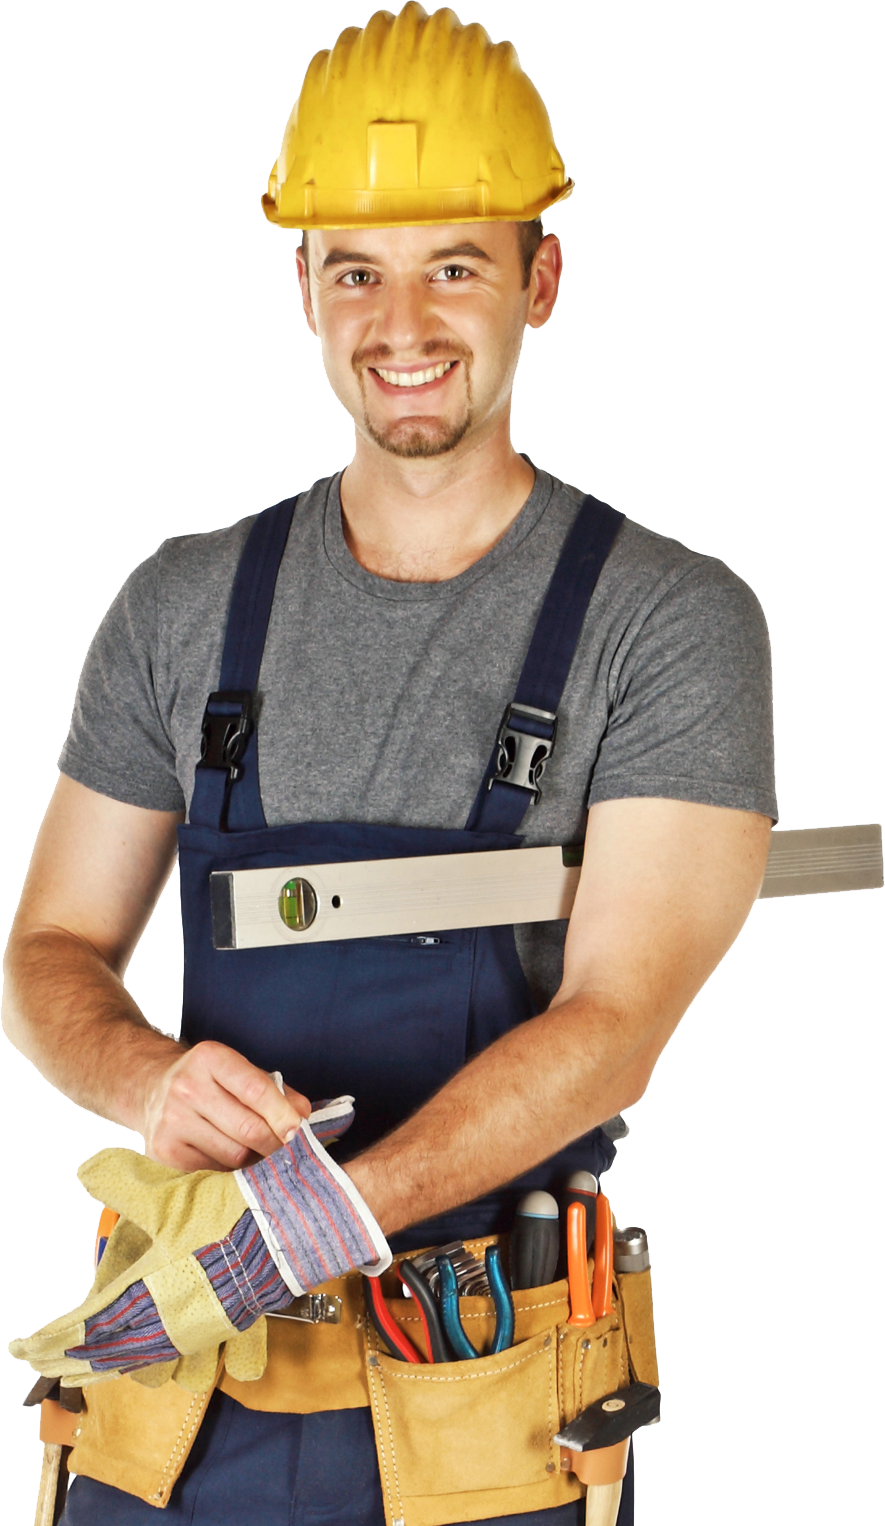 man with foundation repair tools